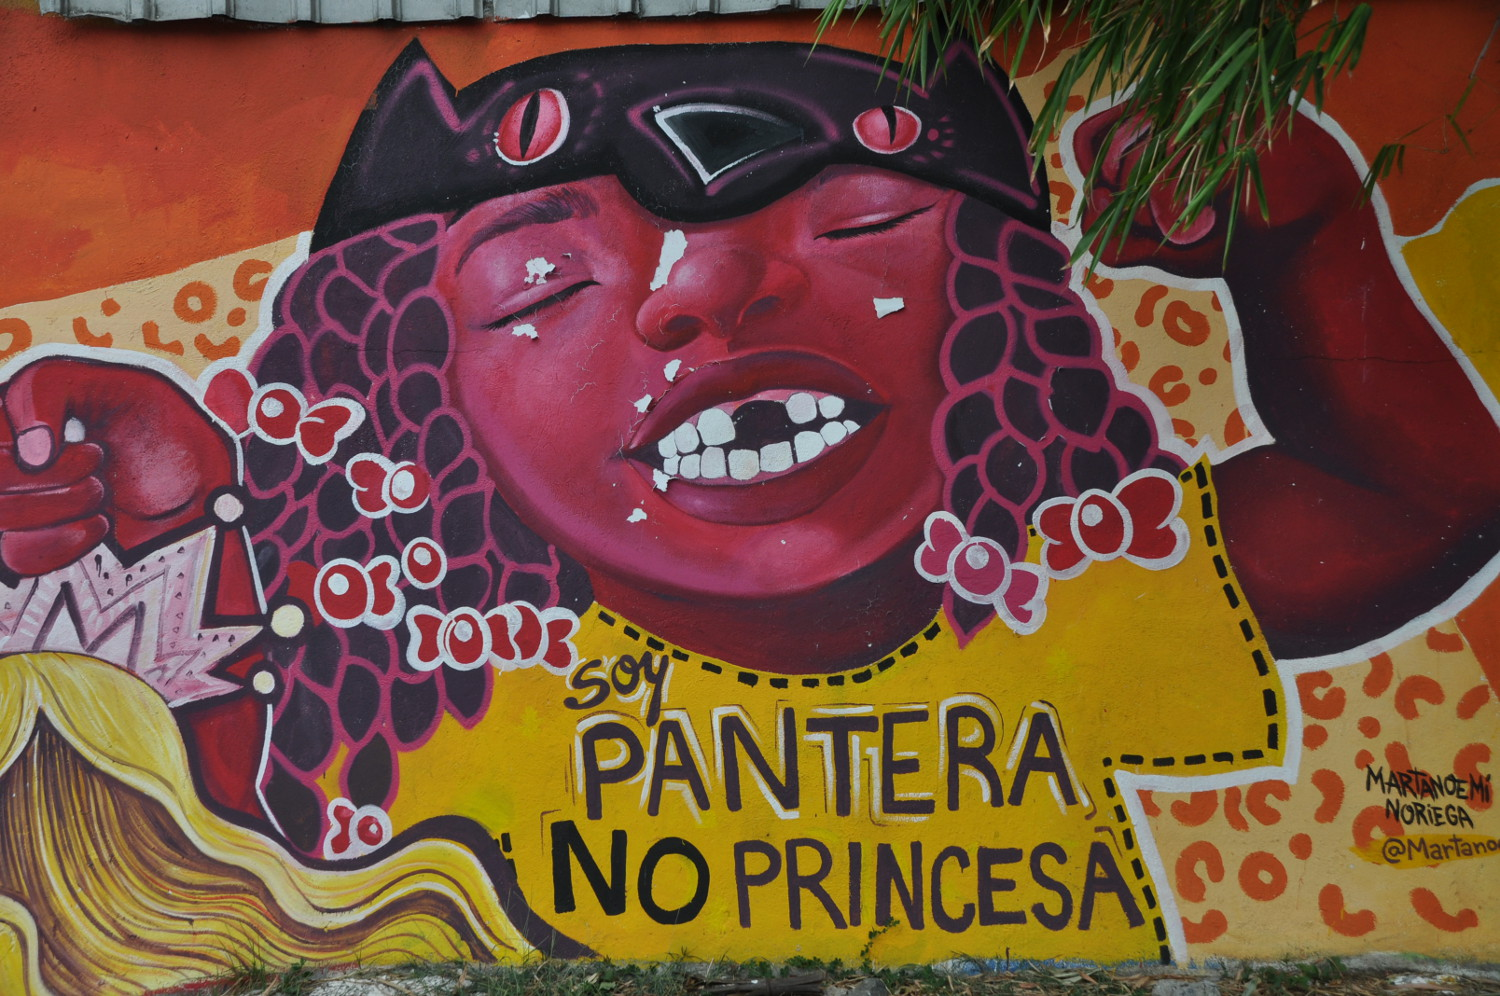 Graffito: Panther, nicht Prinzessin! | Graffito: a panther, not a princess!